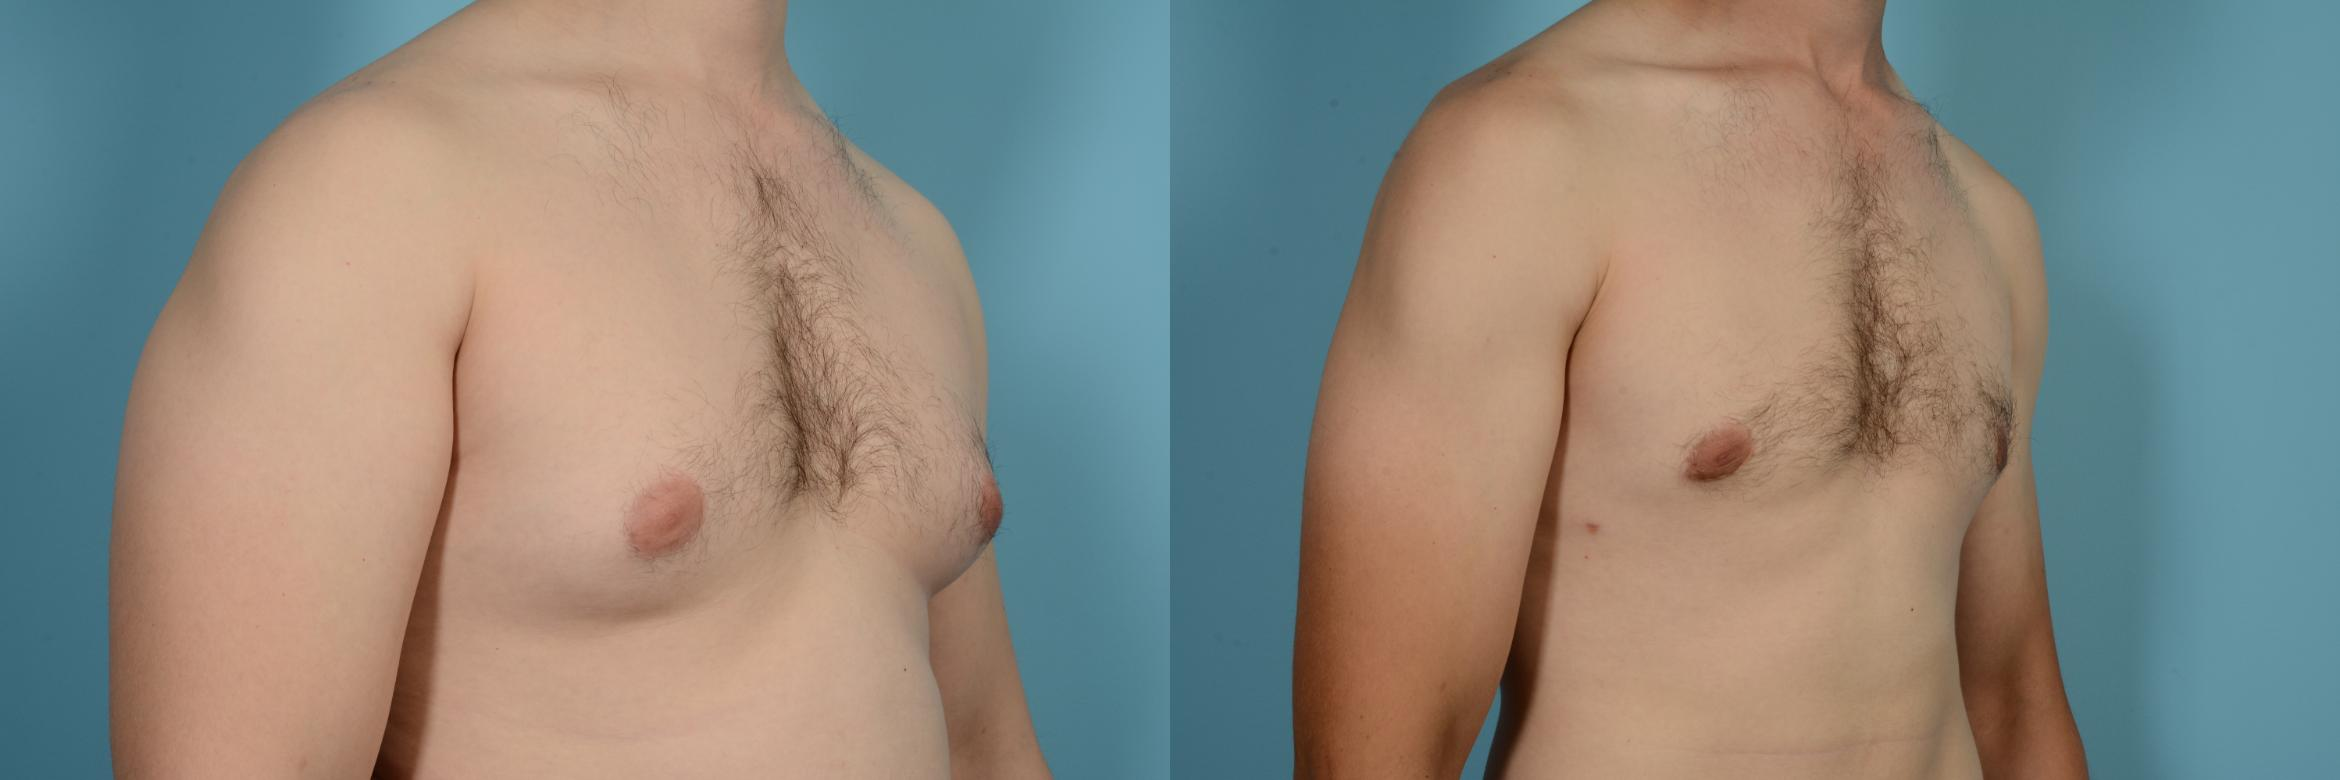 Male Breast Reduction (Gynecomastia) Case 630 Before & After Right Oblique | Chicago, IL | TLKM Plastic Surgery